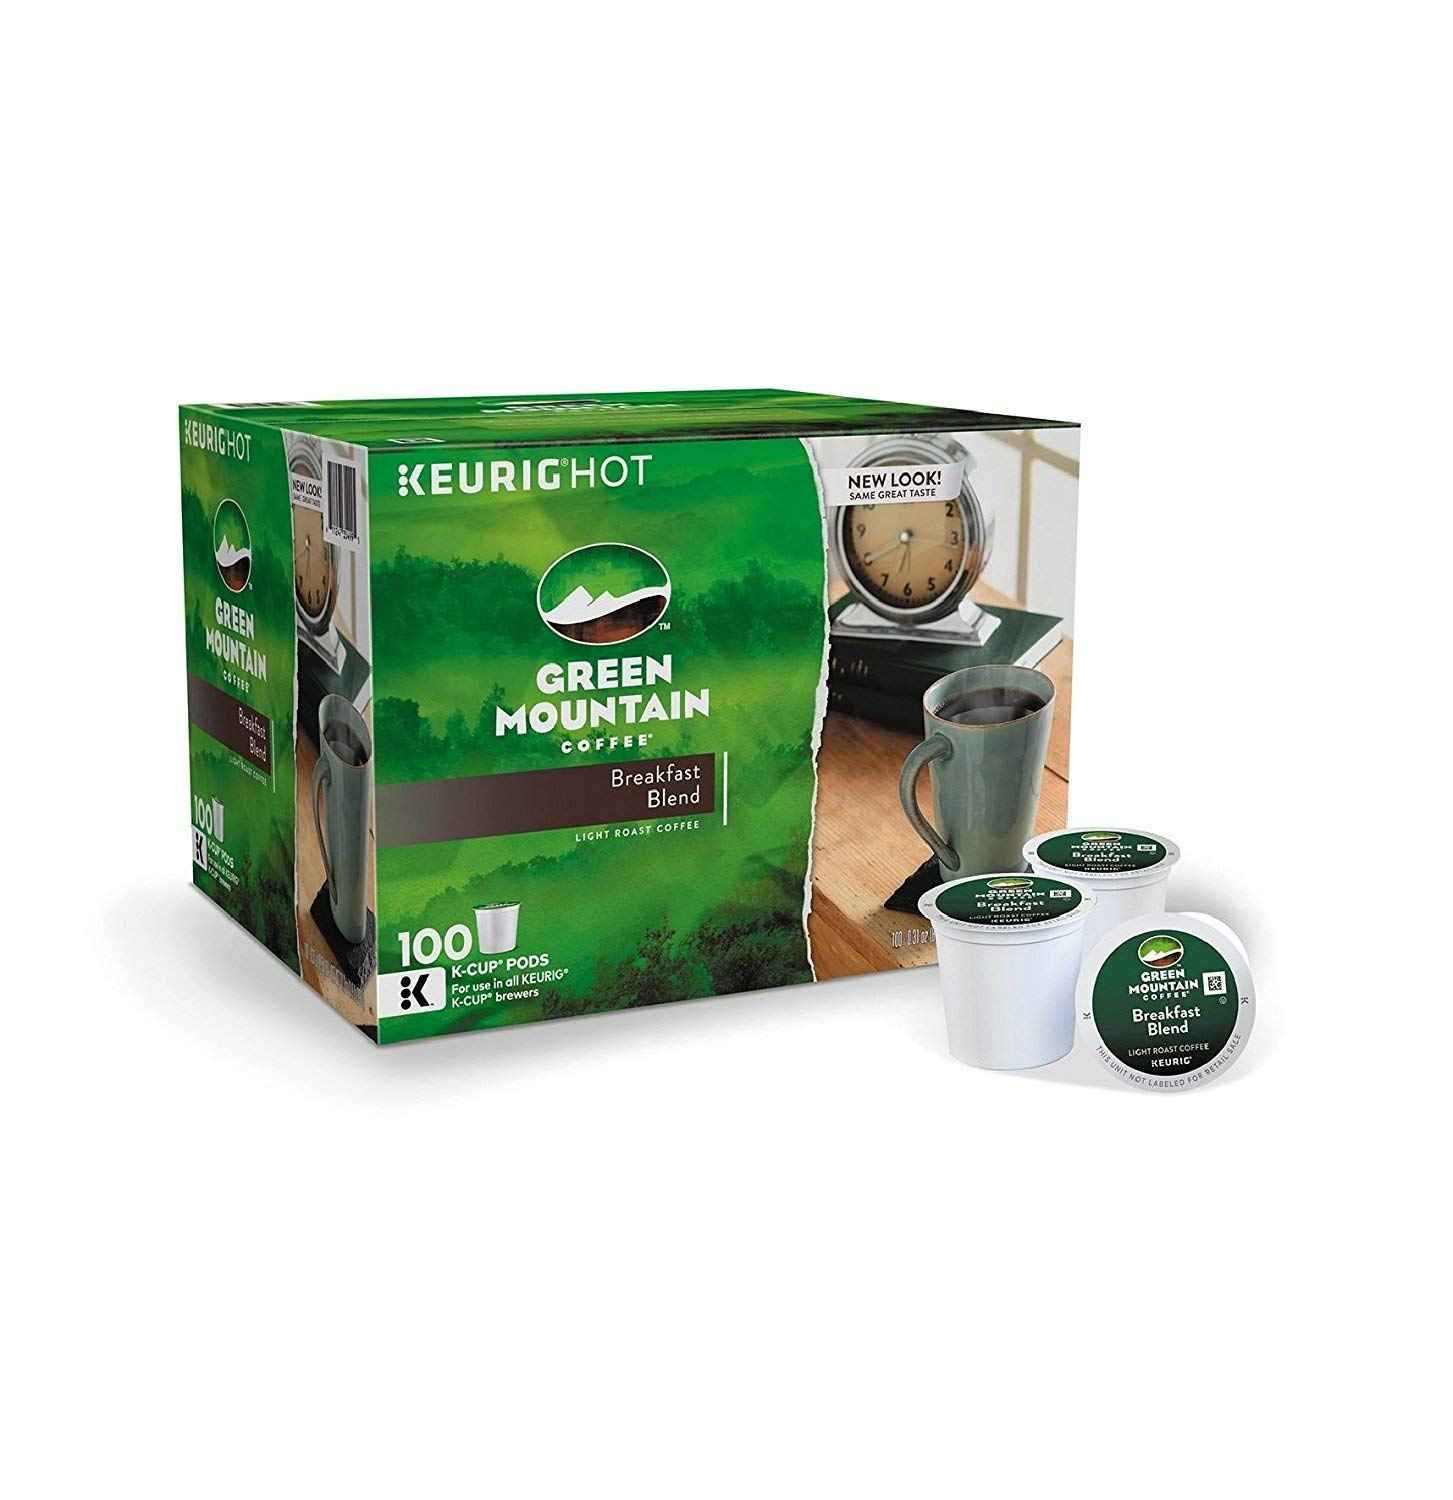 Green Mountain Coffee Breakfast Blend, K-Cup for Keurig Brewers, 100 Count (Packaging May Vary)